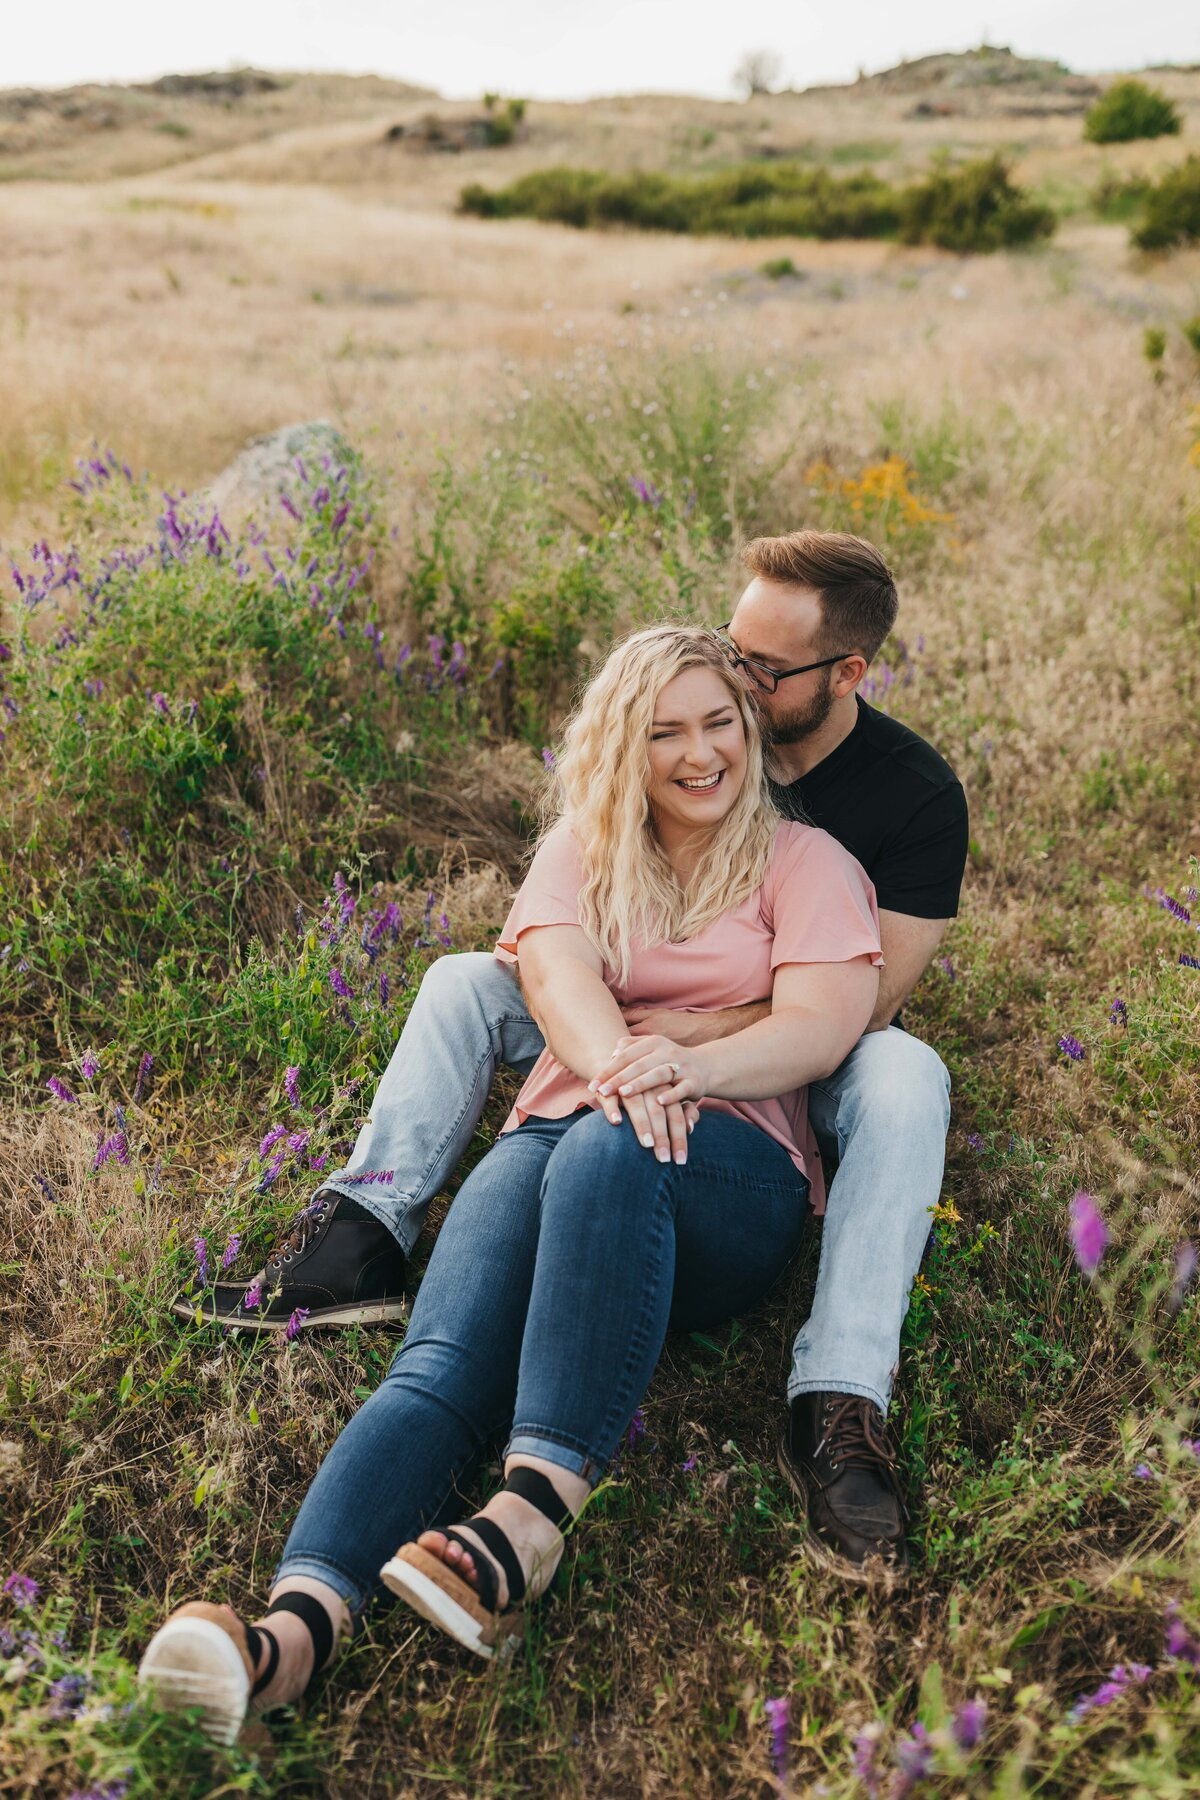 Engagement Session in Spokane Washington, Best Photographer - Clara Jay Photo